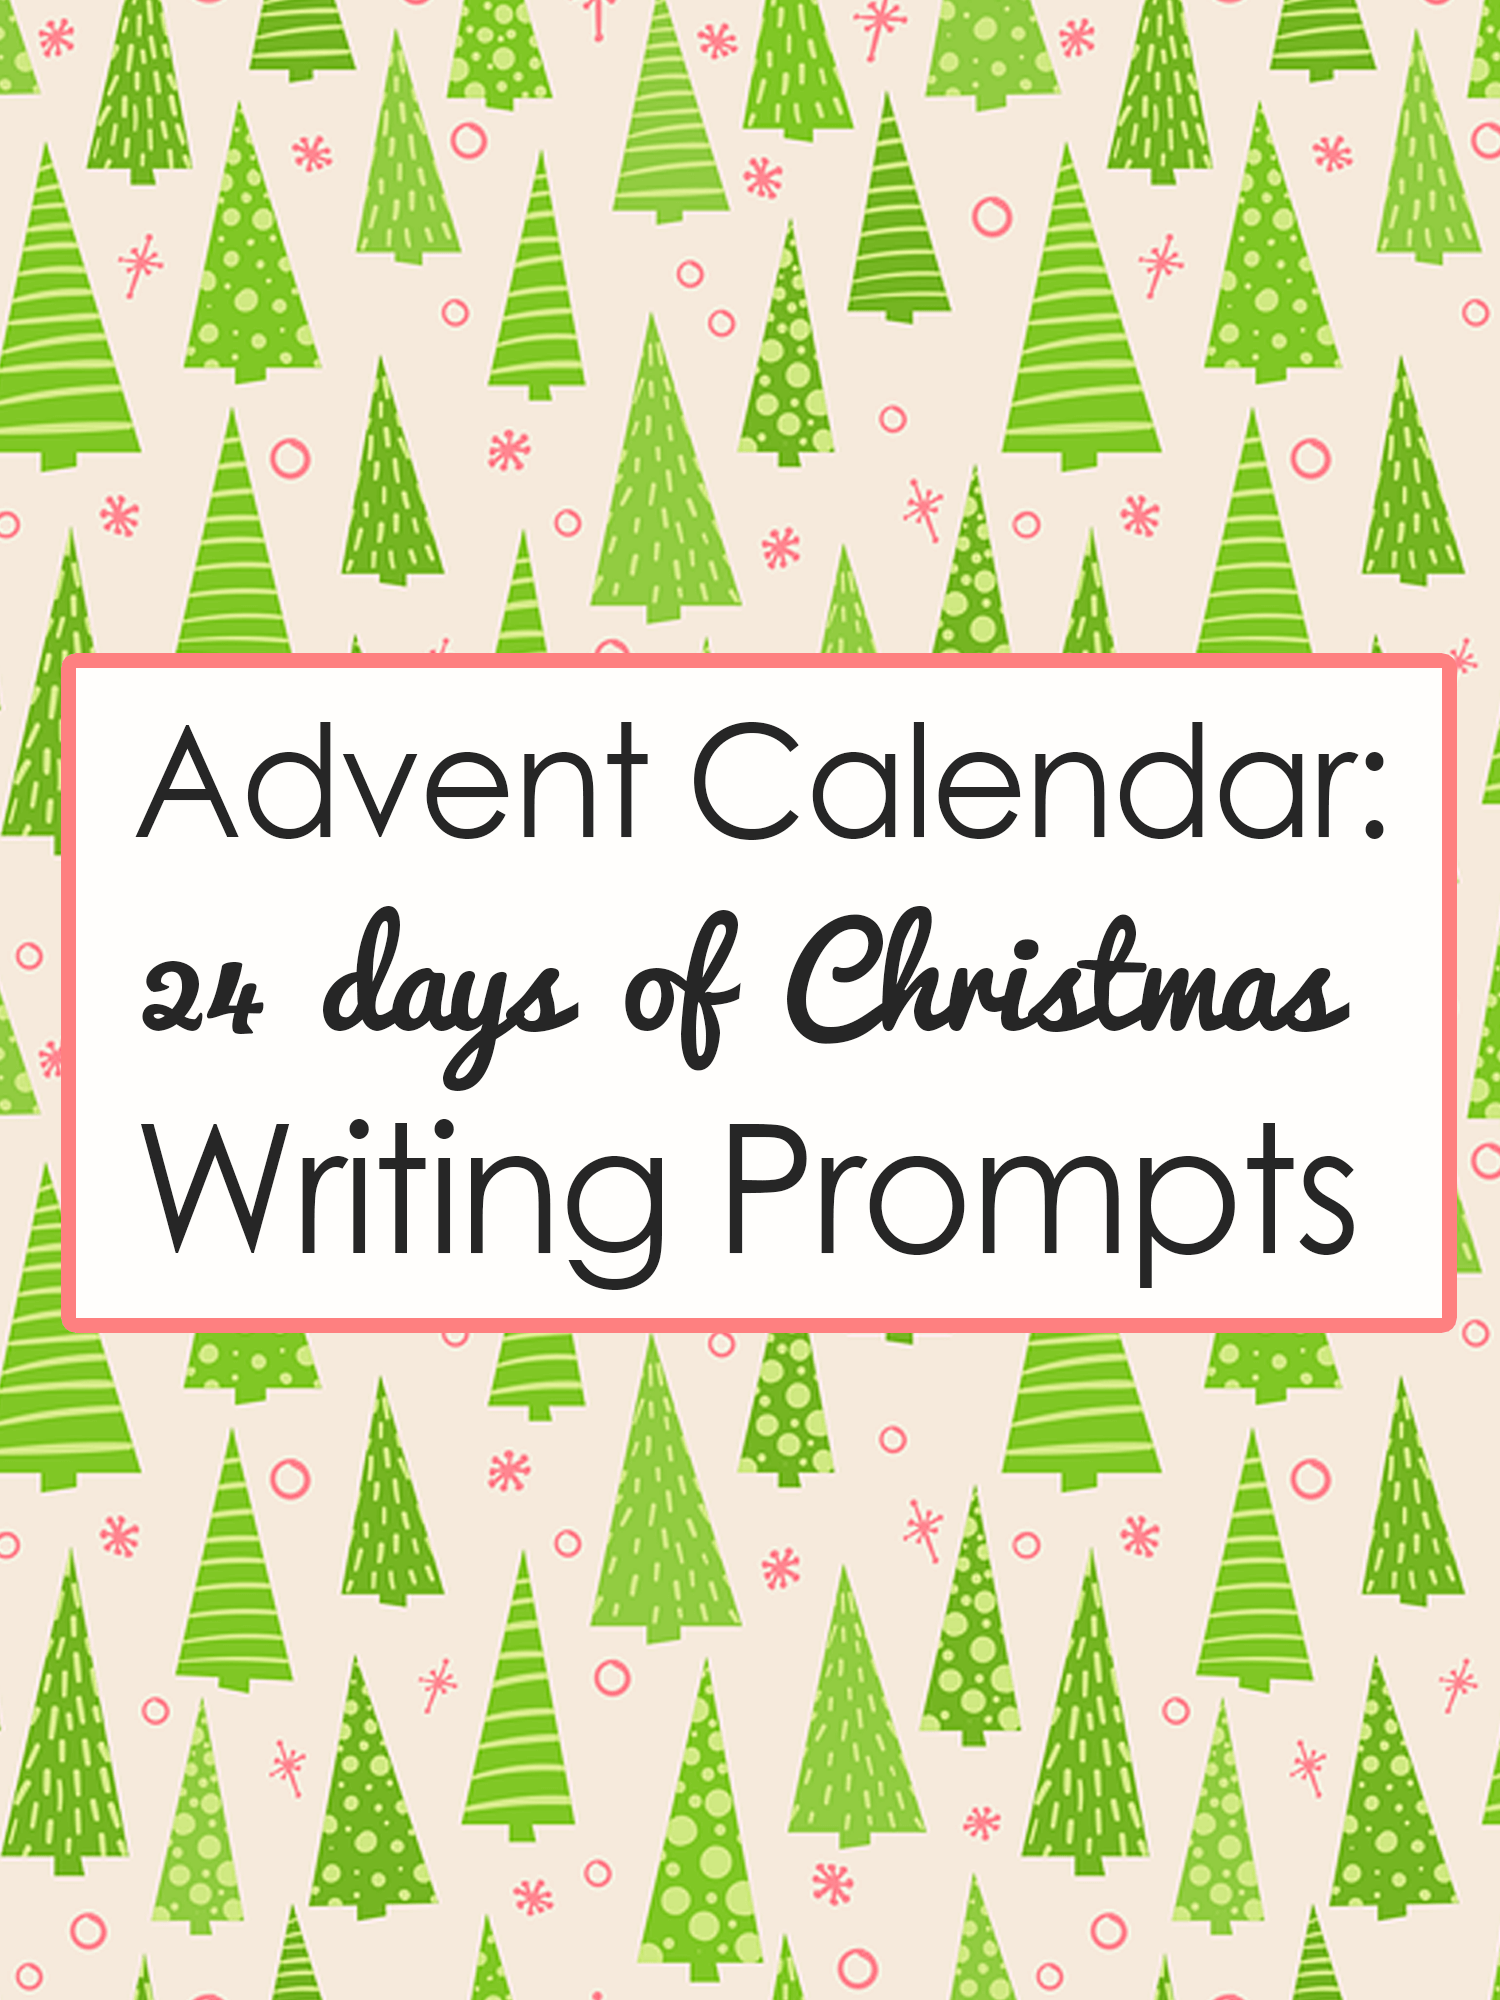 Christmas Writing Prompts.24 Days Of Christmas Writing Prompts Imagine Forest